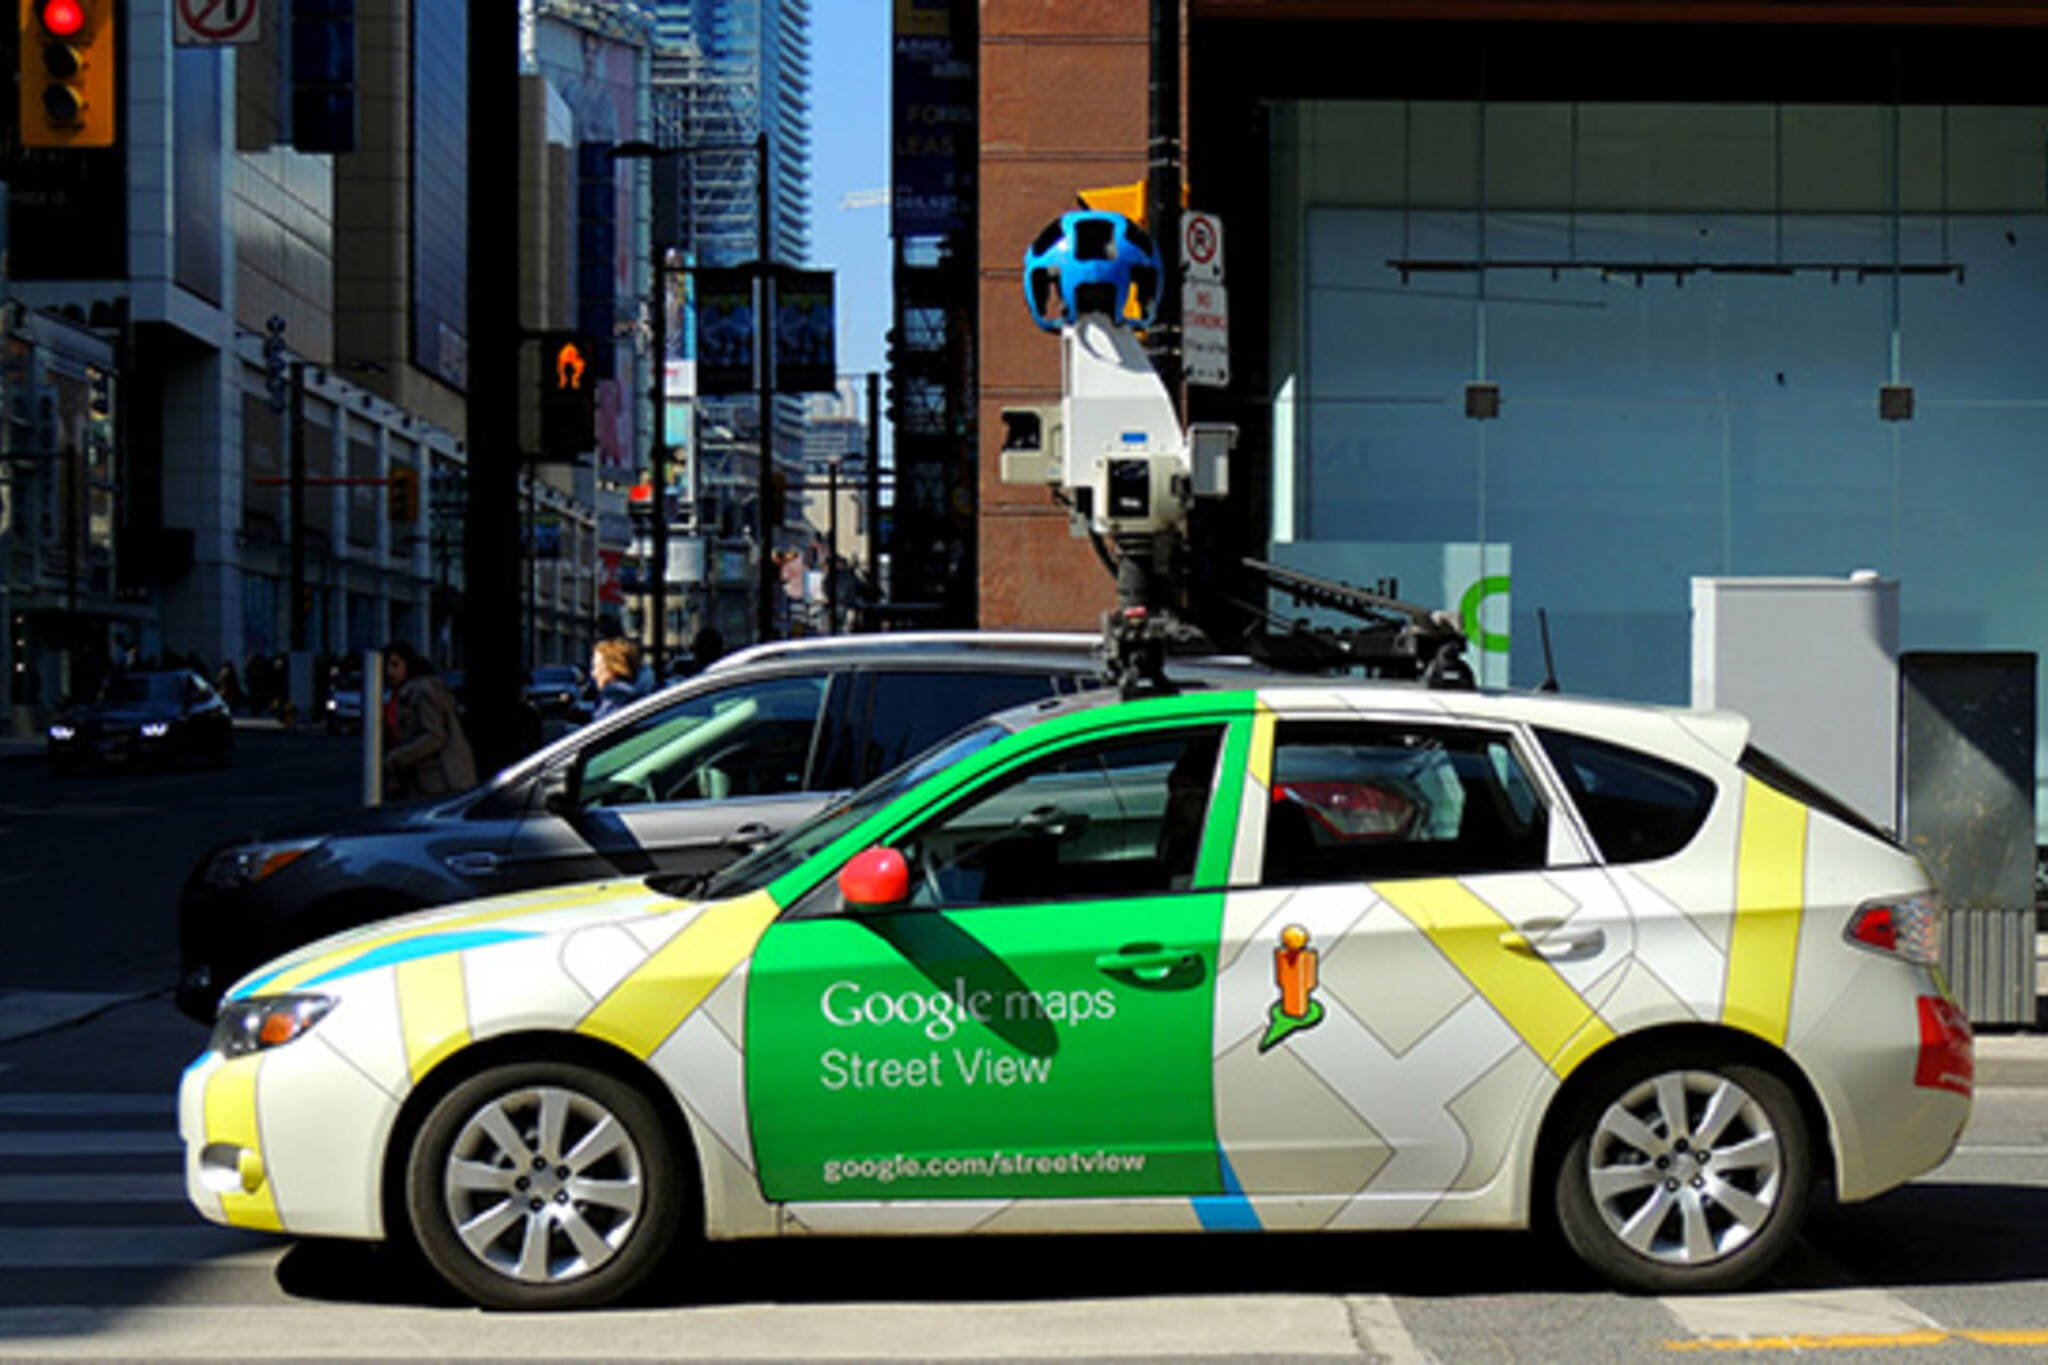 google street view car in toronto. Black Bedroom Furniture Sets. Home Design Ideas